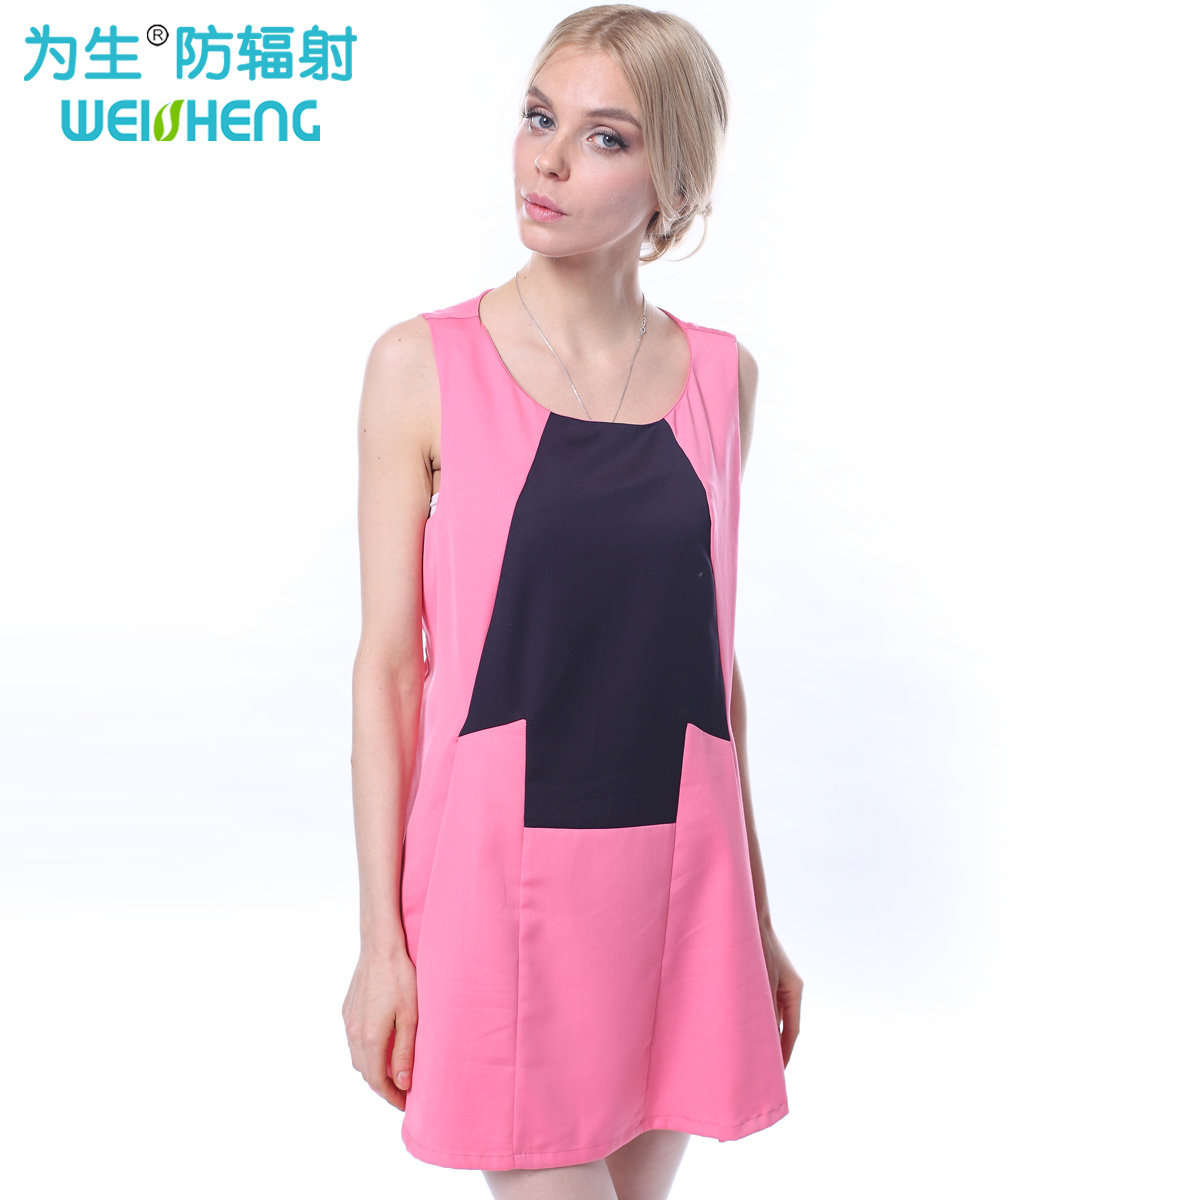 c567505dd24a0 Get Quotations · Dependent anti shot clothes for pregnant women genuine  summer fashion maternity clothes pregnant radiation radiation suit